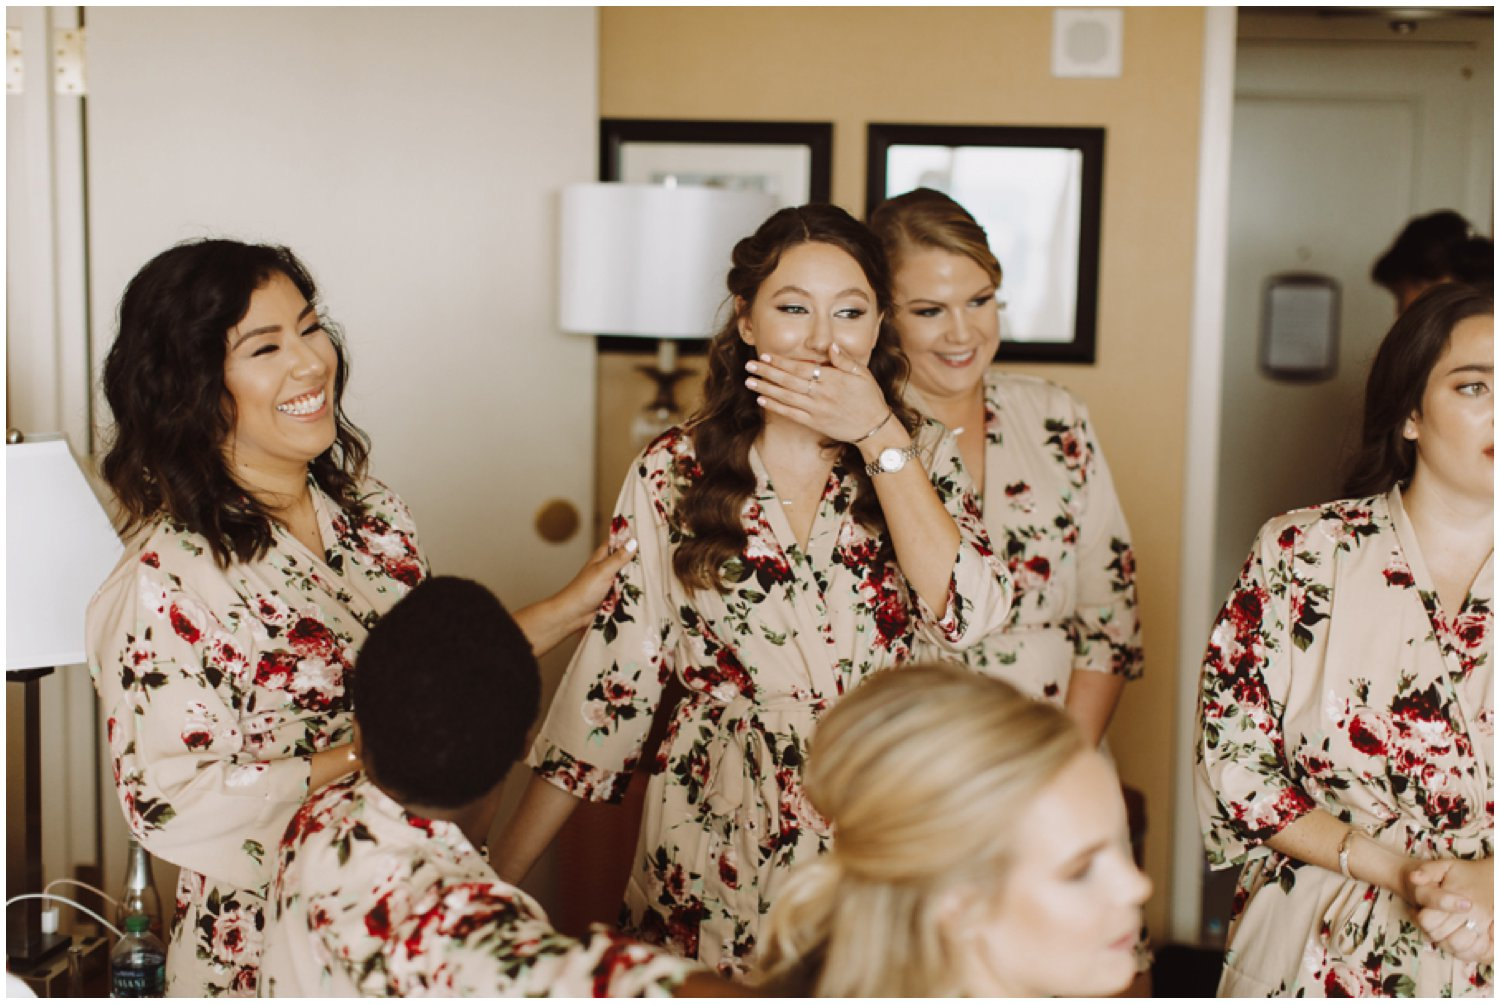 Baltimore wedding photographer | bridal getting ready portraits | bridesmaids first look